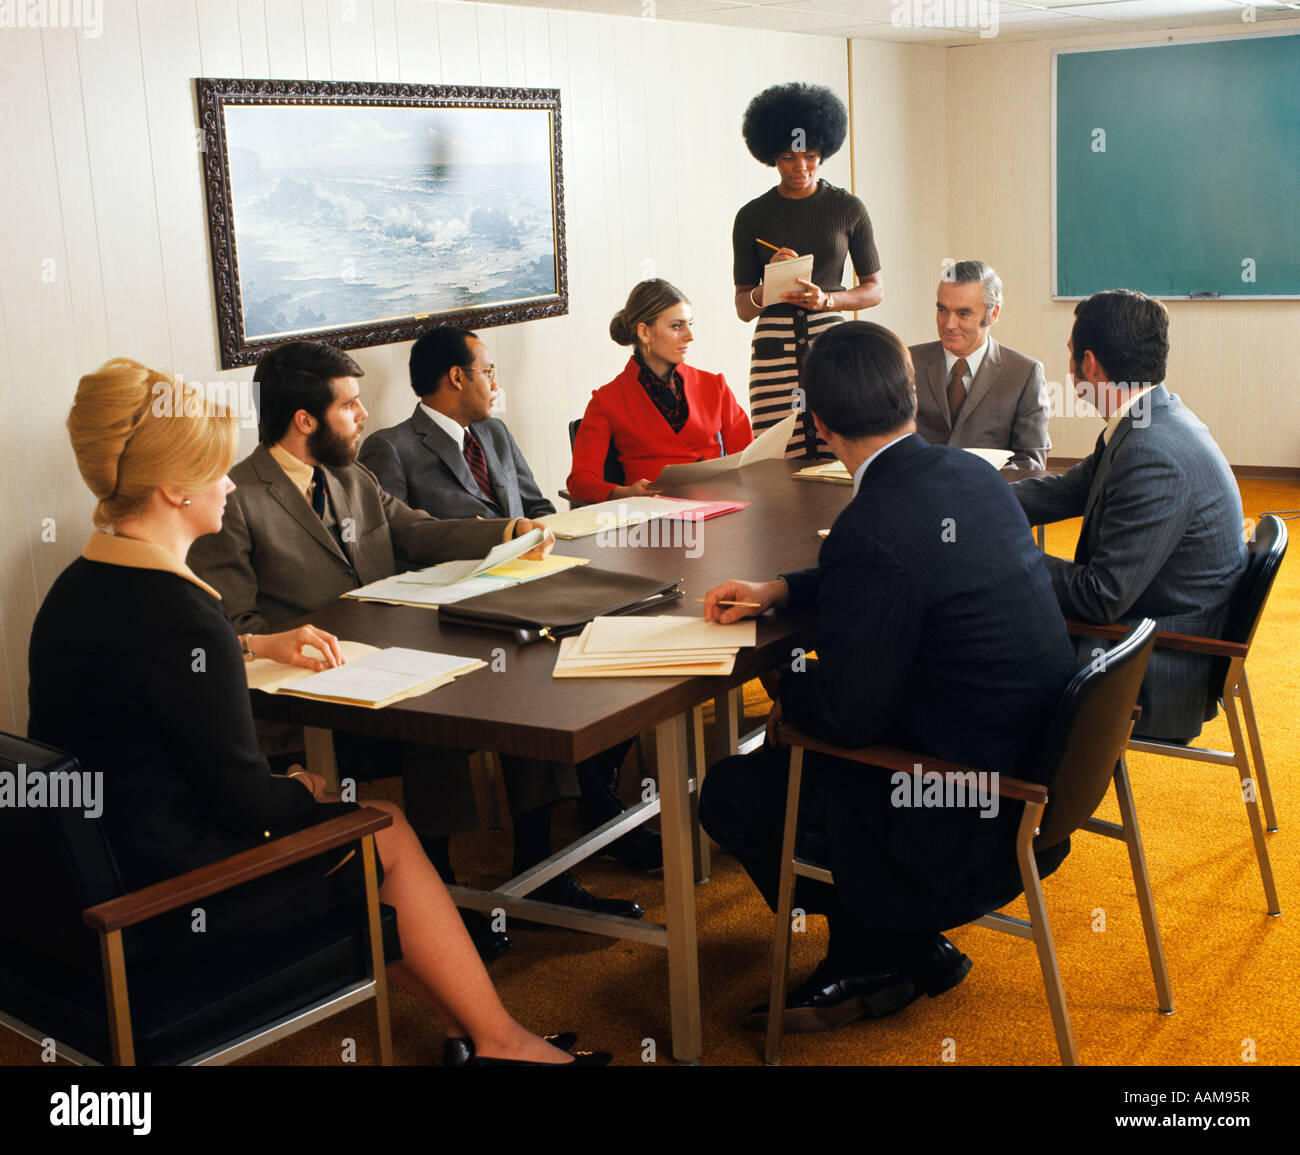 S PEOPLE MEN WOMEN CONFERENCE ROOM TABLE BOARD MEETING Stock - Standing conference room table